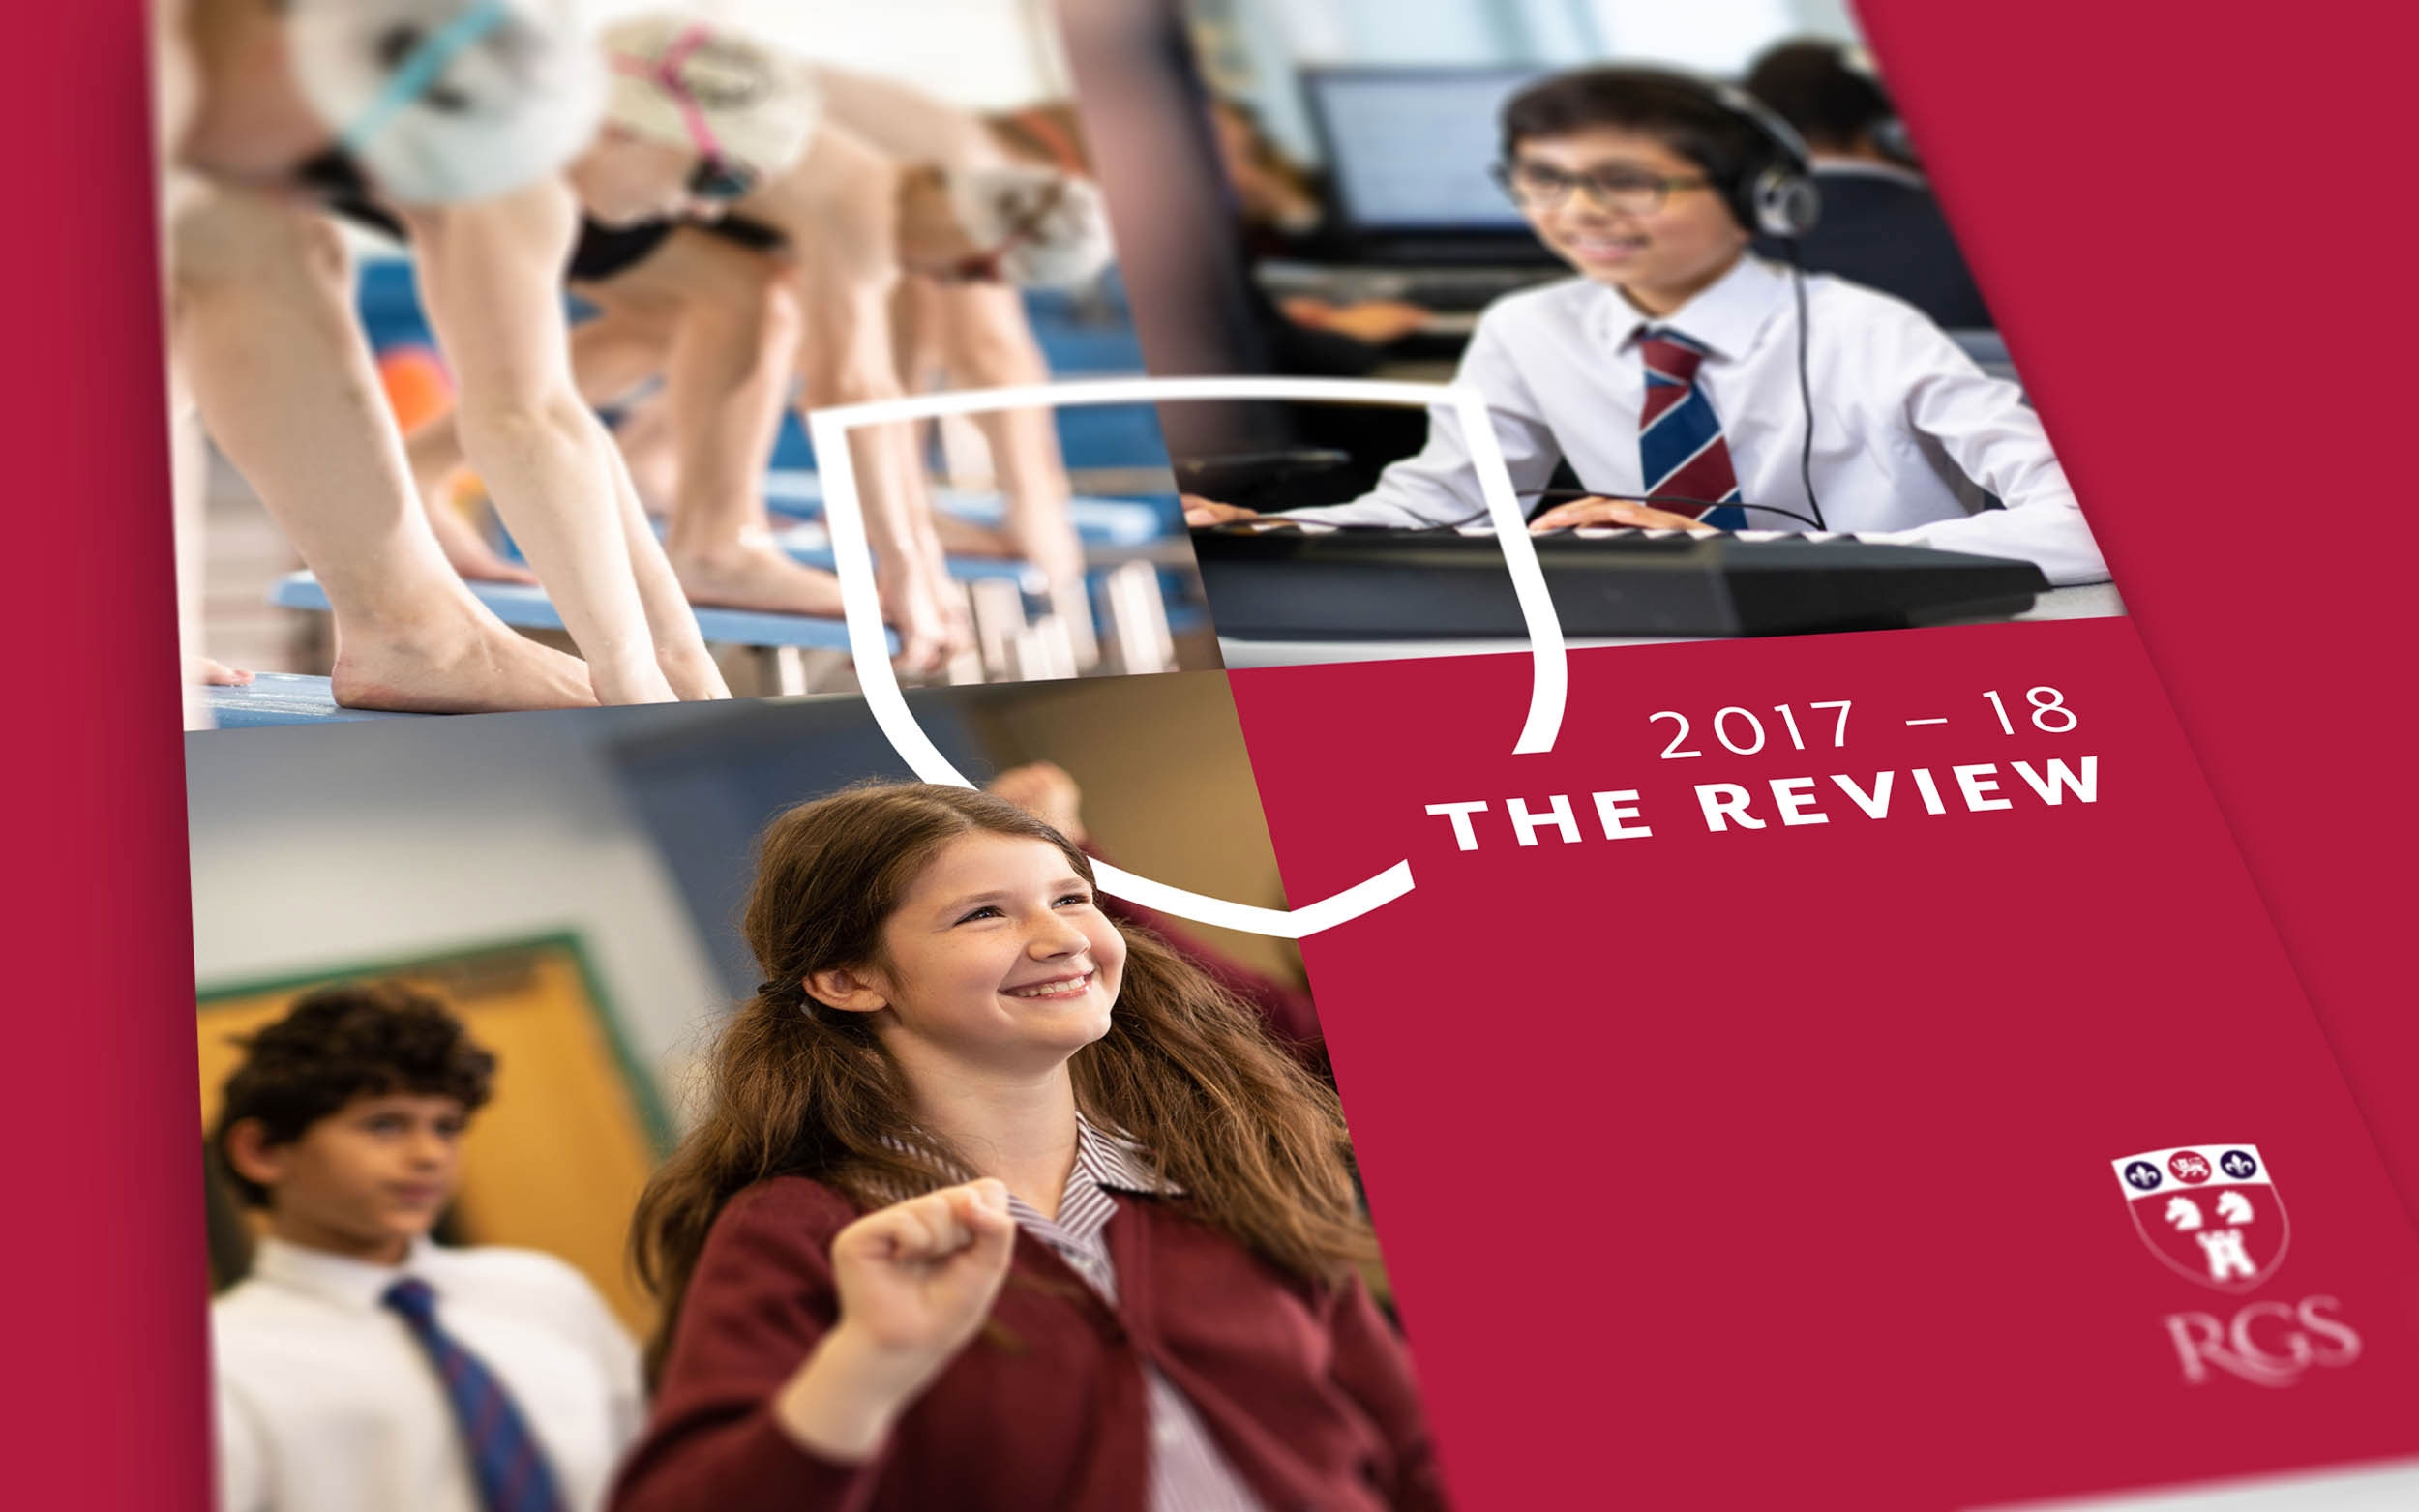 Independent school annual report, RGS independent school advertising by Altogether Creative.